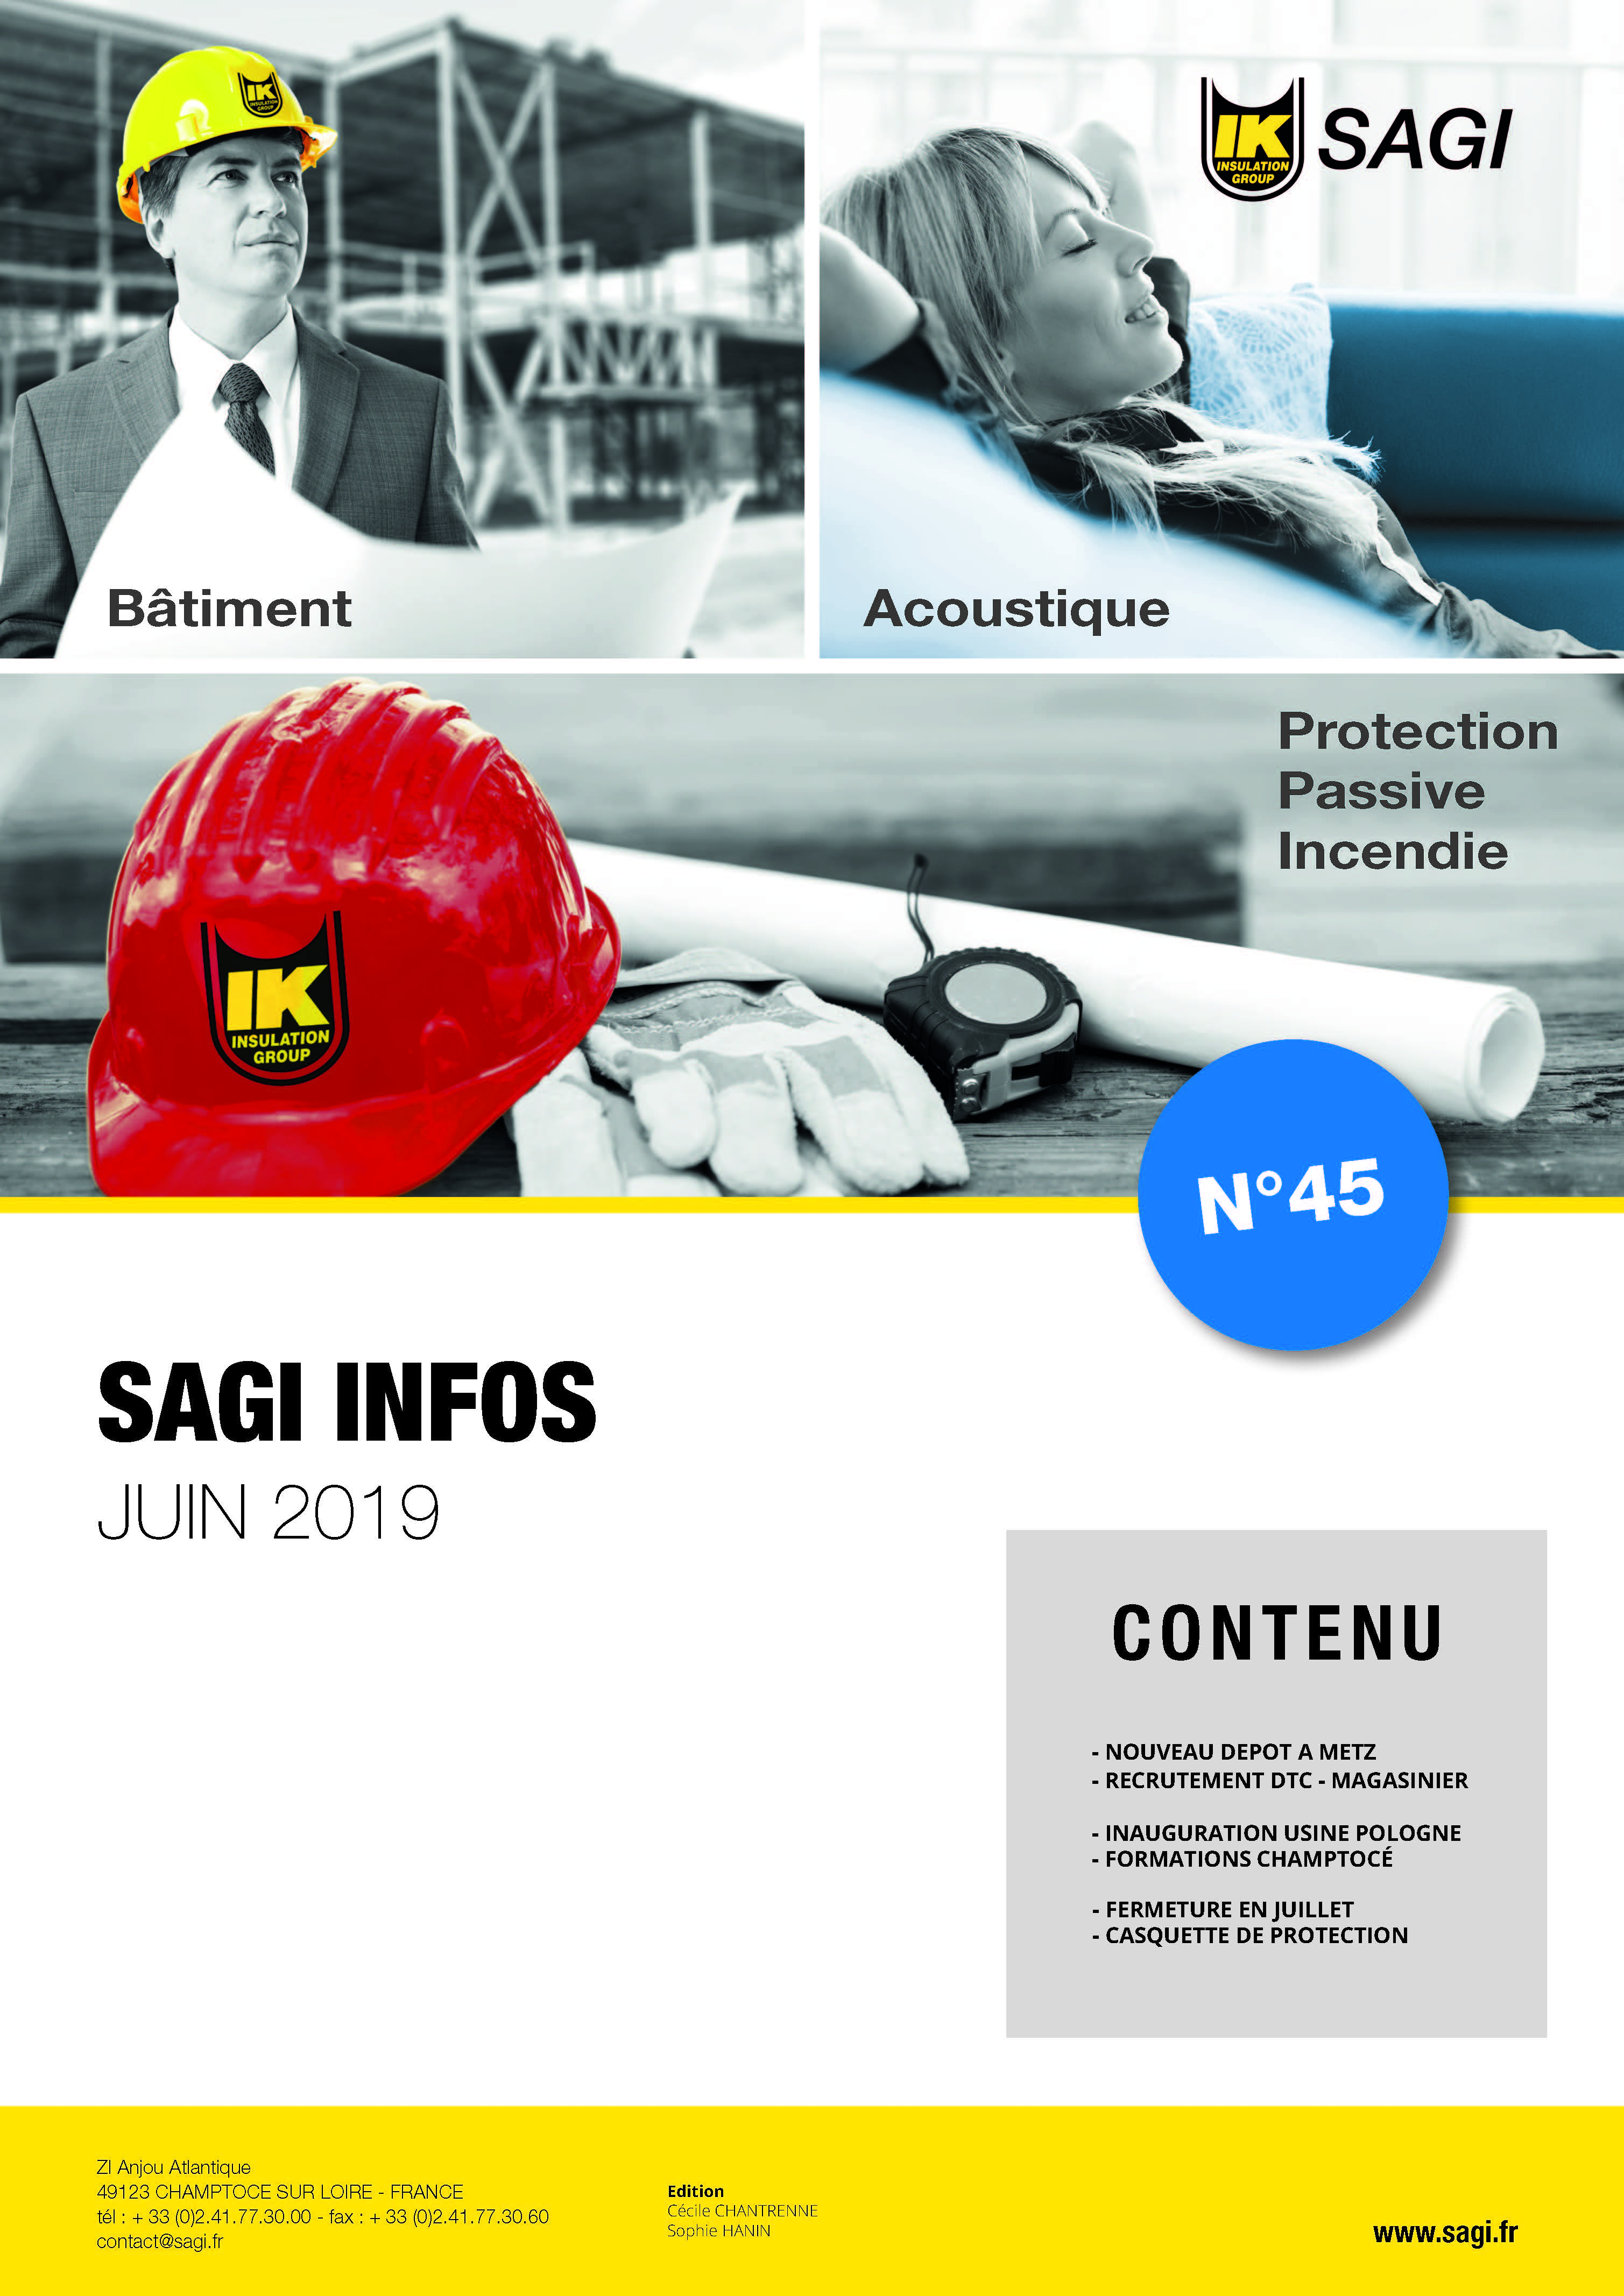 SAGI INFOS 06 2019 4 pages Page 1